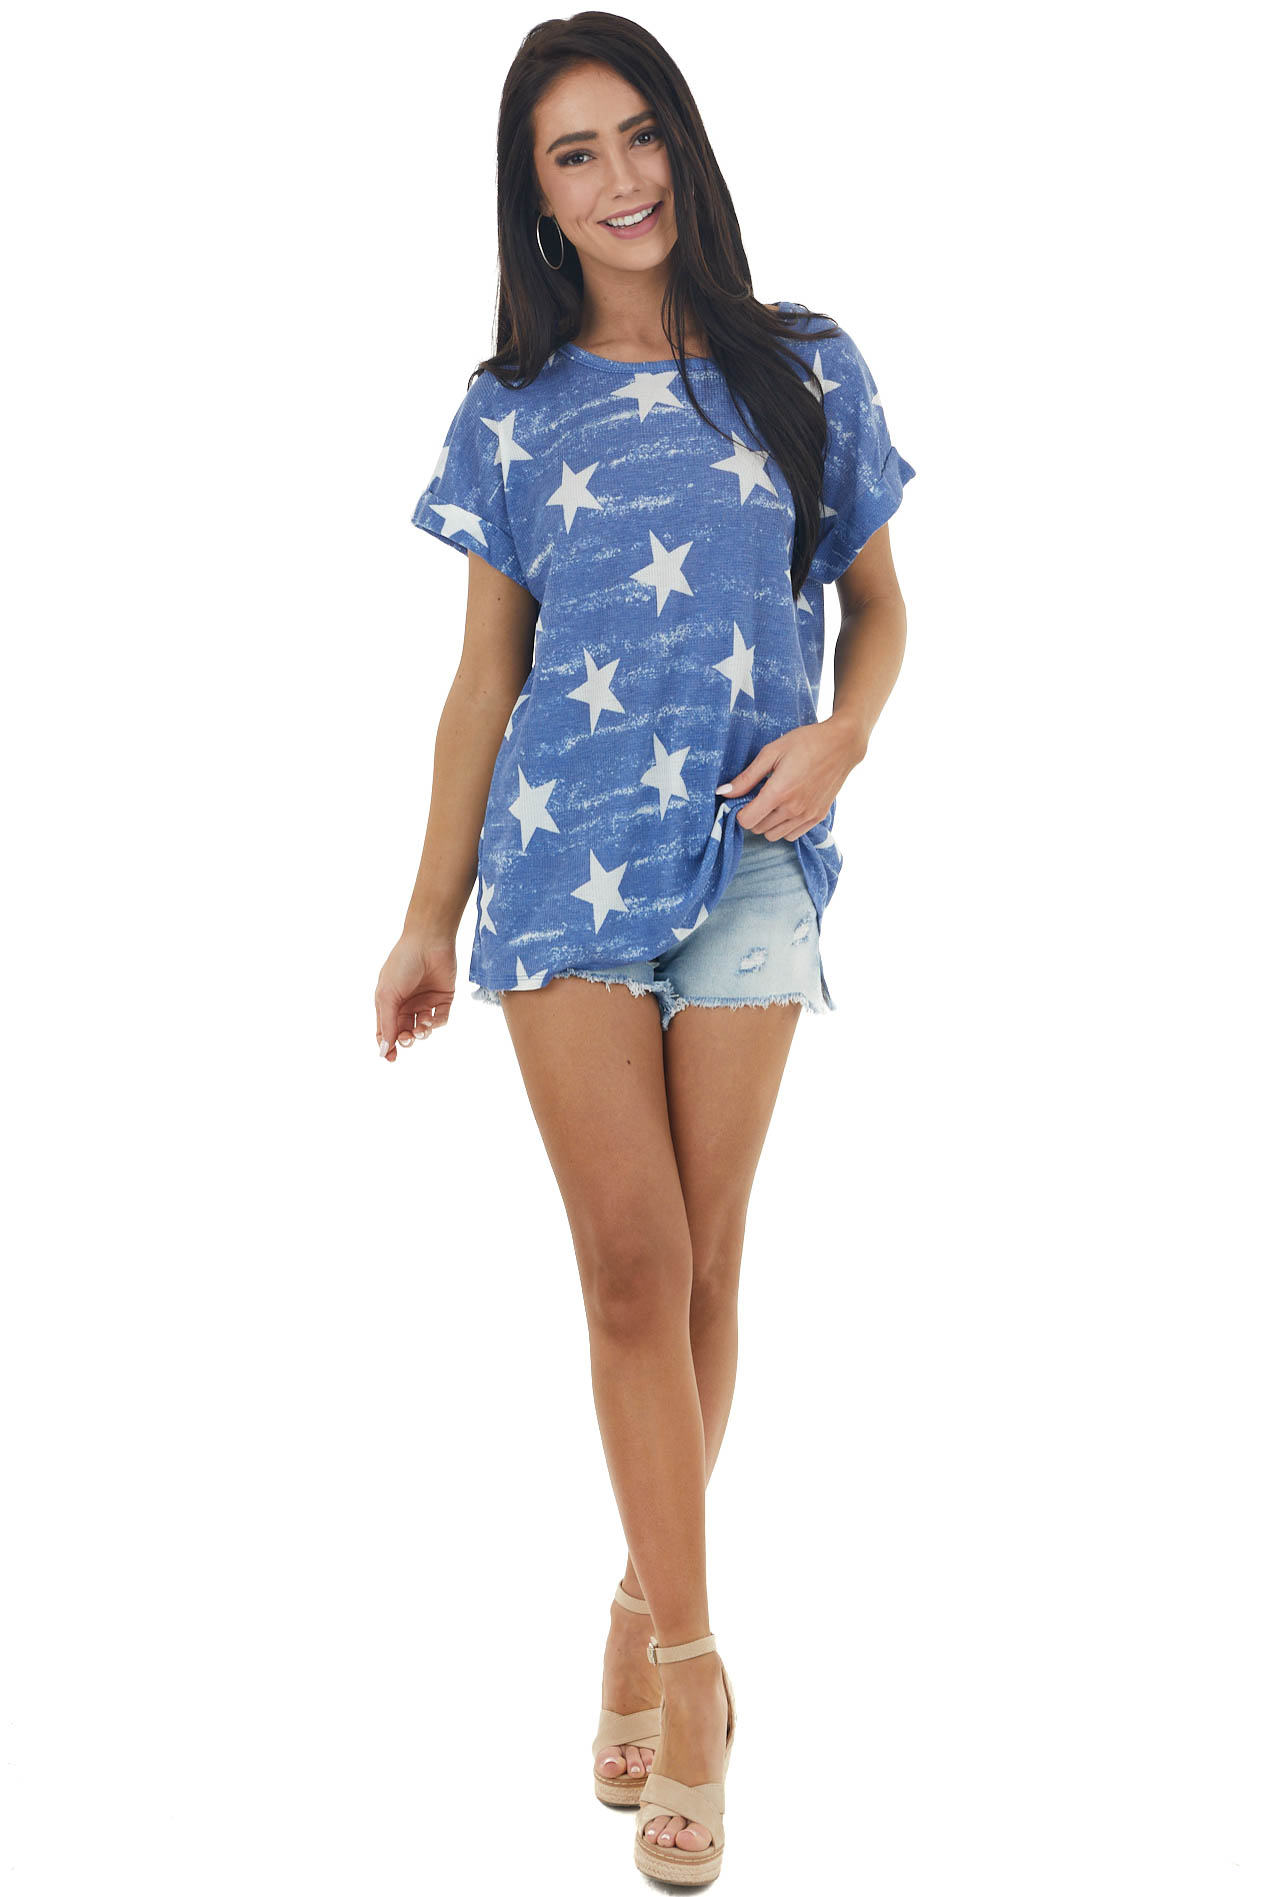 Navy Waffle Knit Top with White Star Print